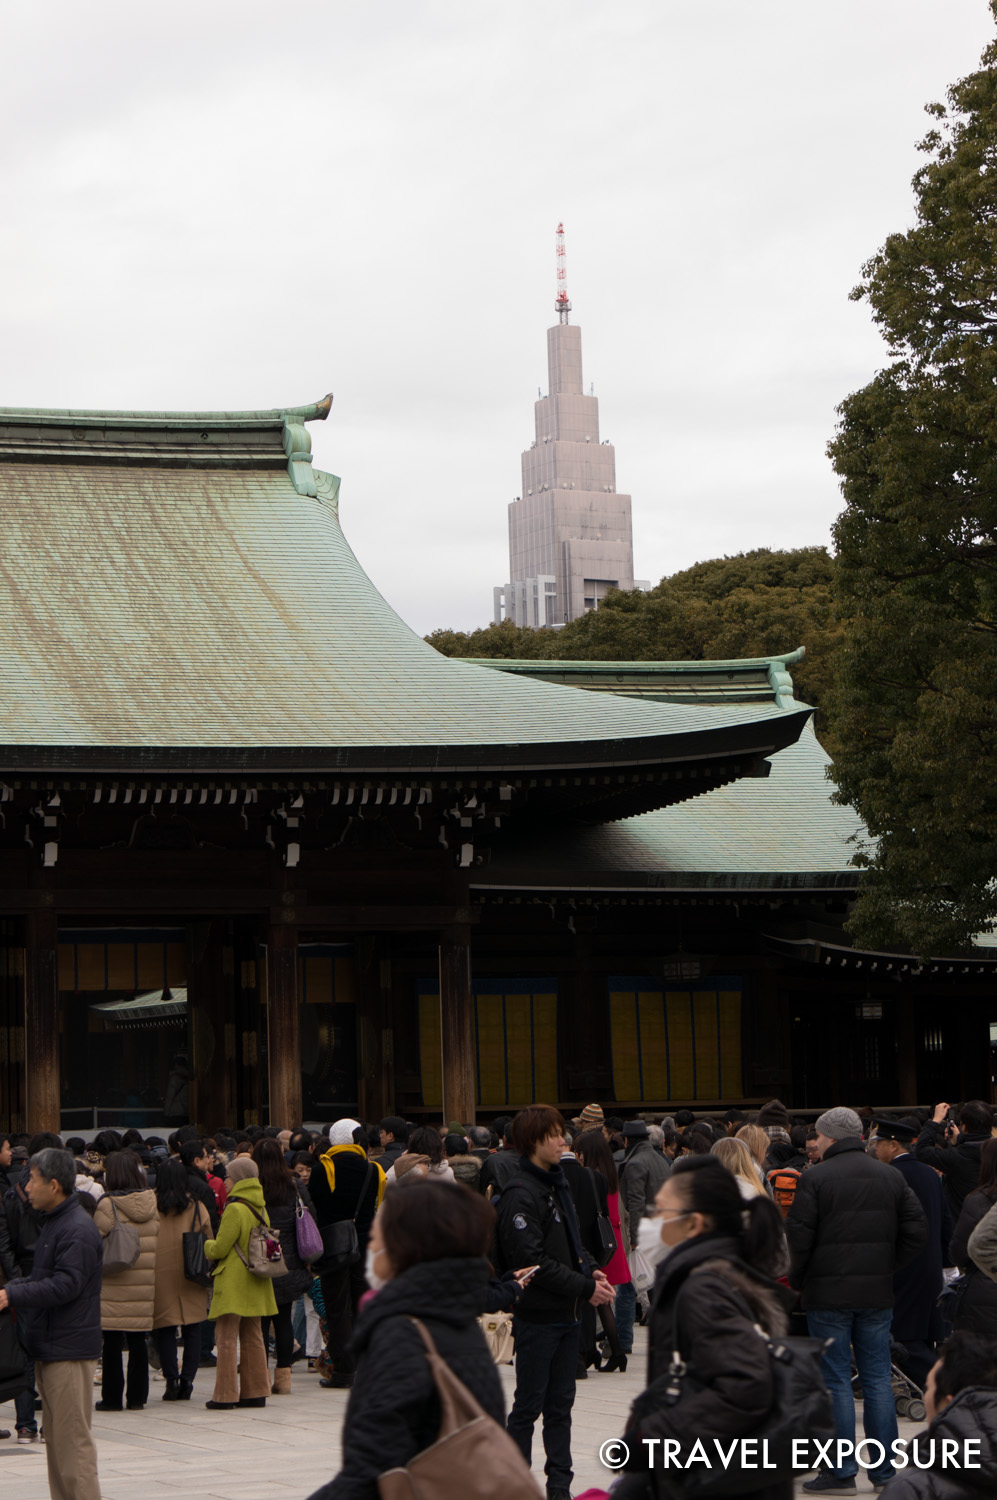 The Shinto Meiji Shrine is dedicated to the Emperor Meiji and his wife Empress Shoken. It's surrounded by a forest of some 100,000 trees planted by volunteers to honor their souls and contributions.